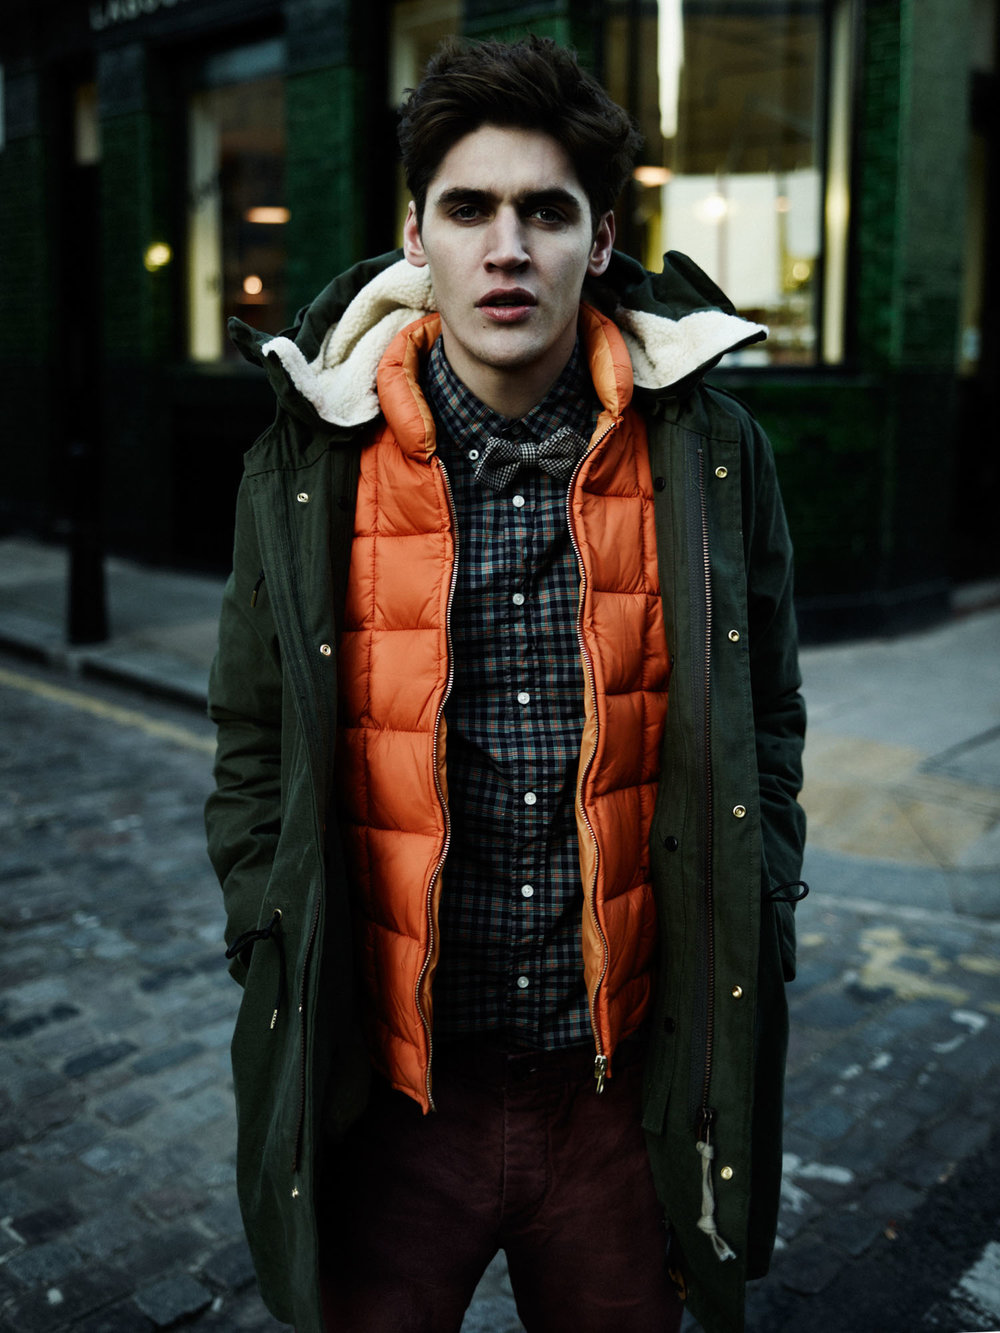 isaac-carew-scotch-soda-fall-winter-2012-13-12.jpg